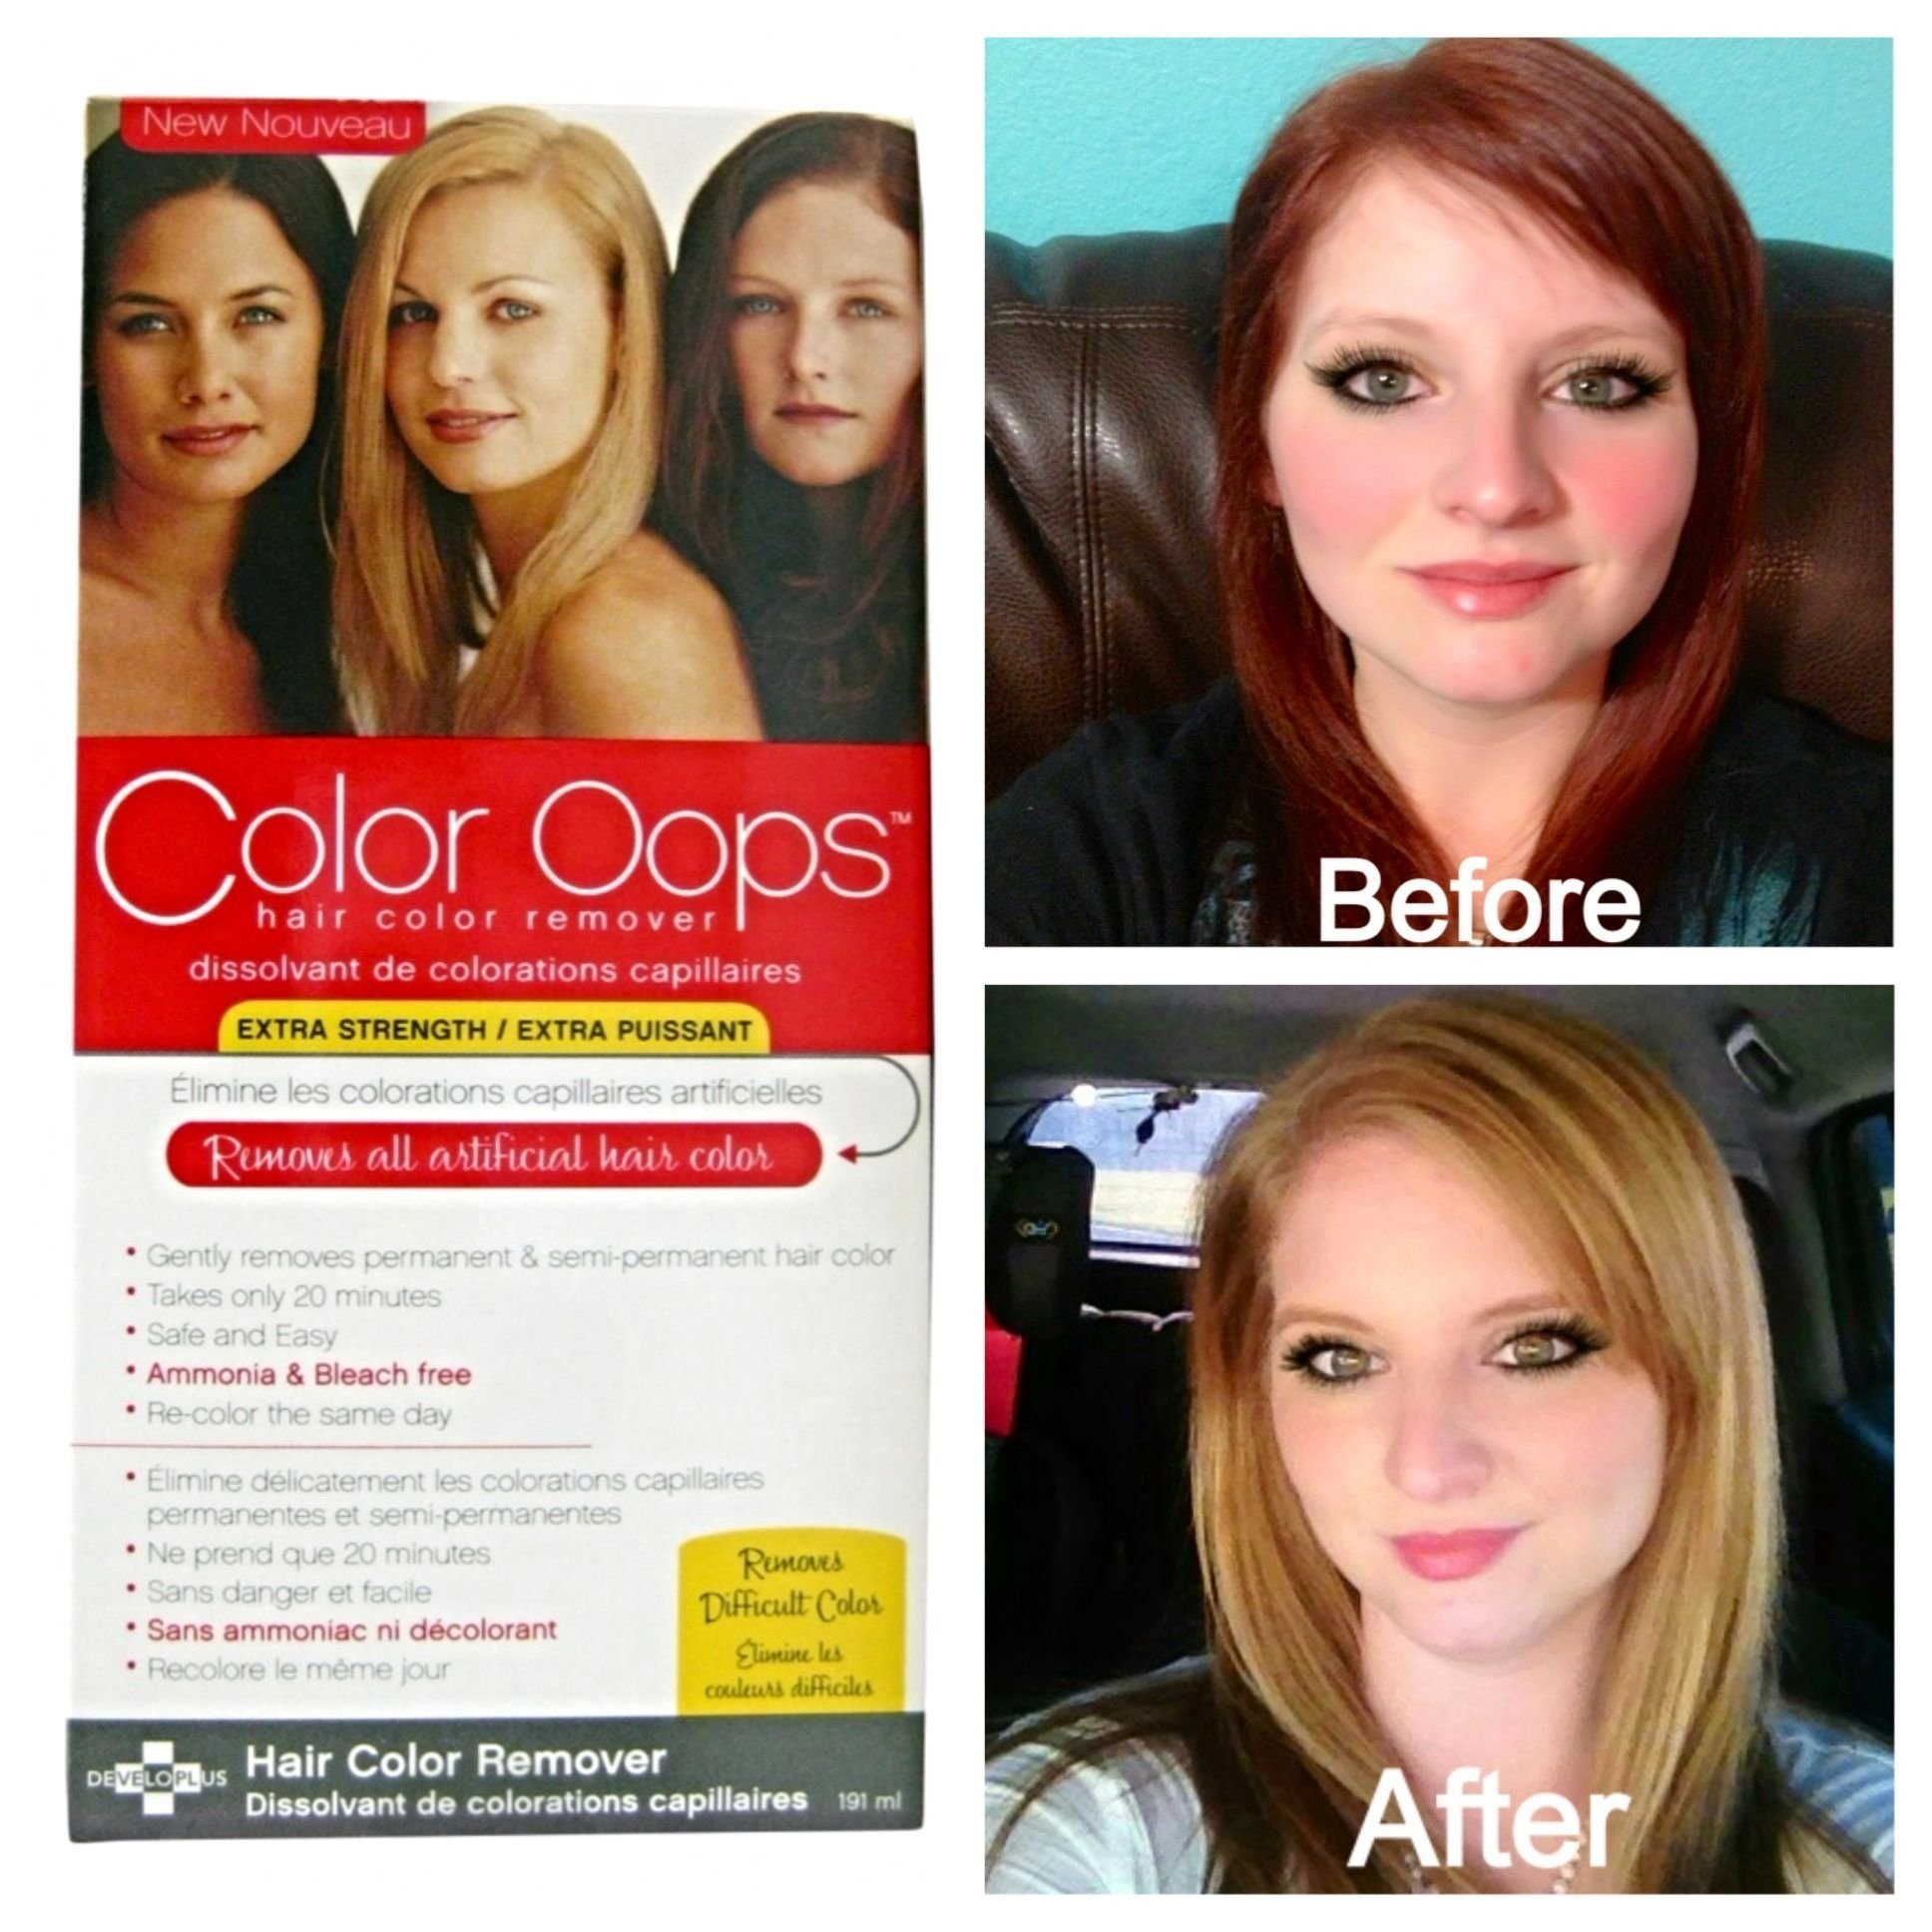 The Best Color Oops Is A Safe Way To Remove Permanent And Semi Permanent Hair Color On Your Hair For 20 Pictures